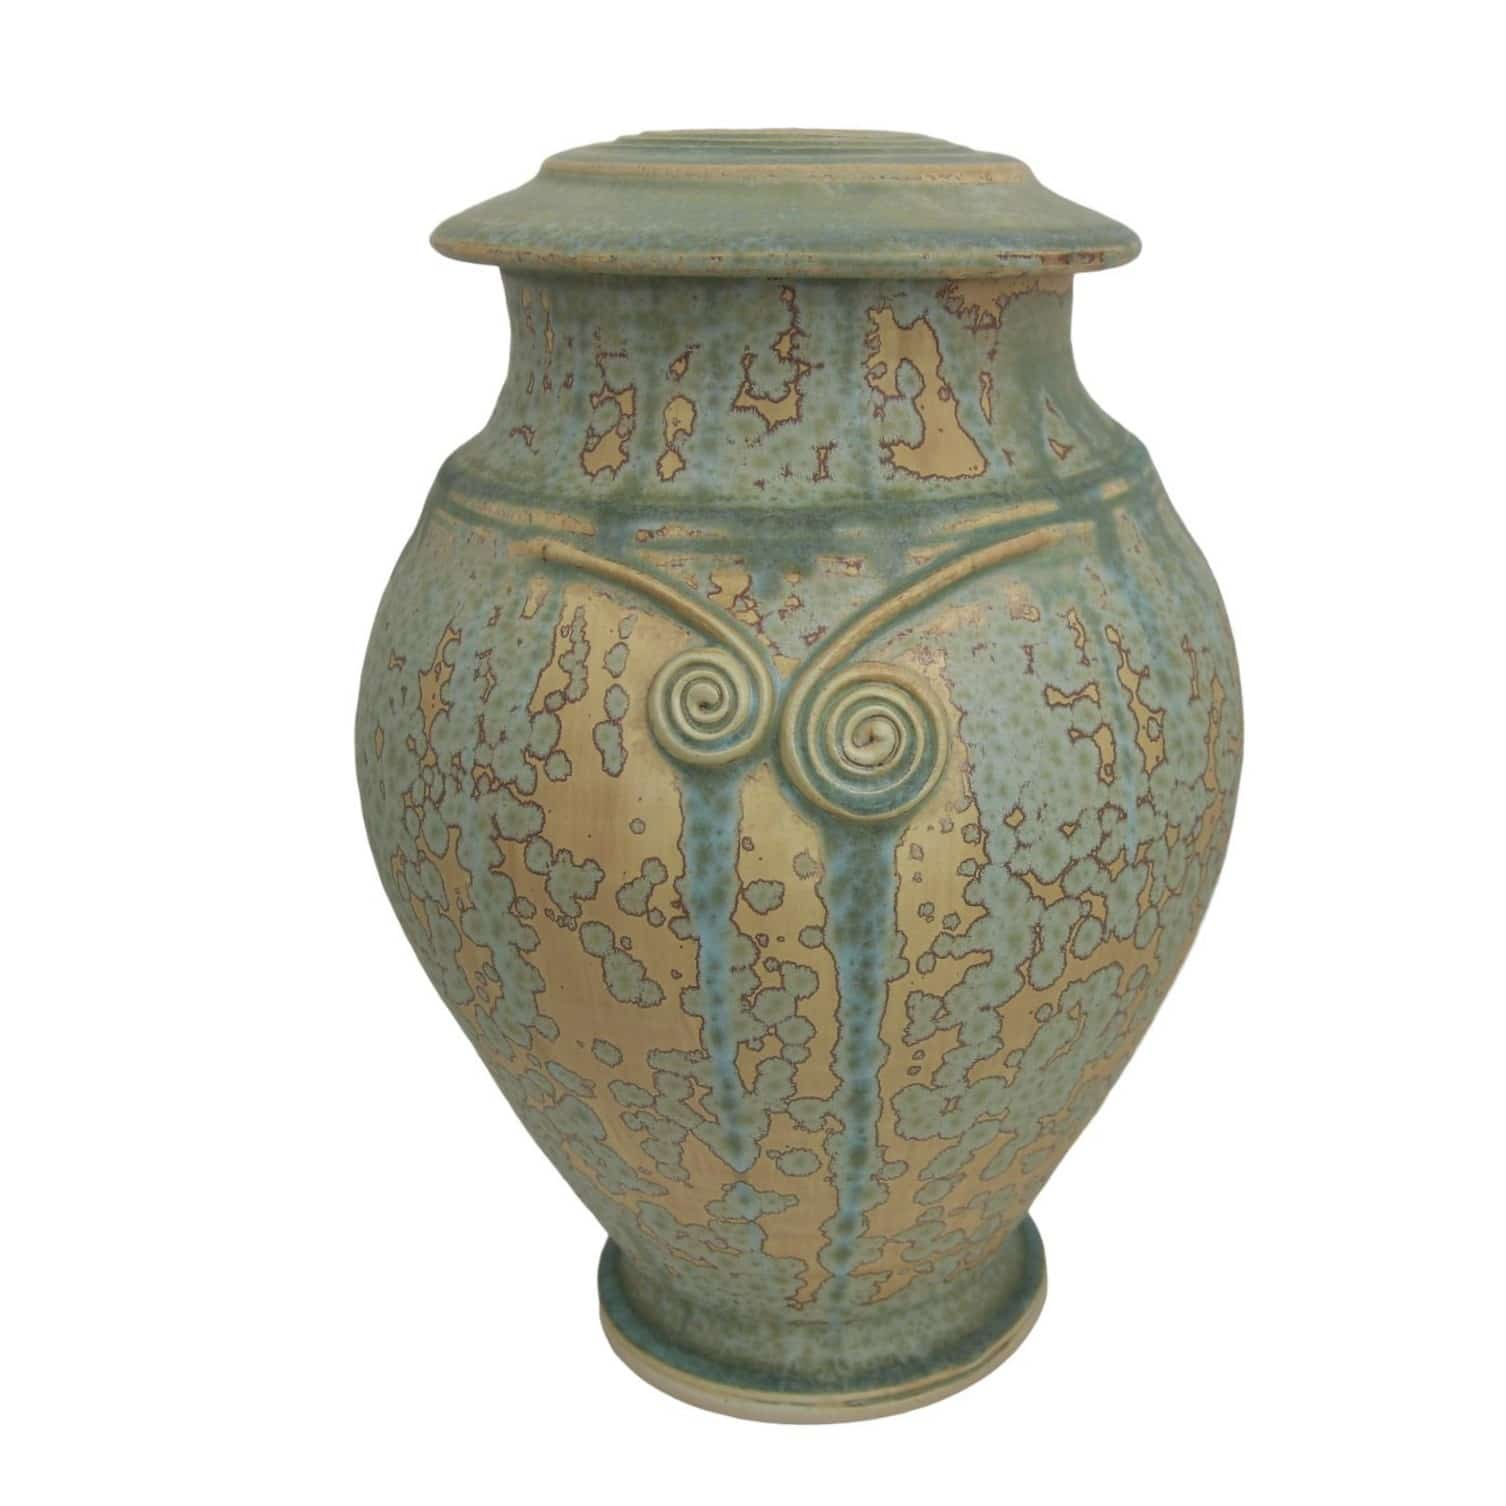 Tall green and sand colored Celtic cremation Urn with a double celtic spiral o the Neck of the Urn sometimes called a torc.